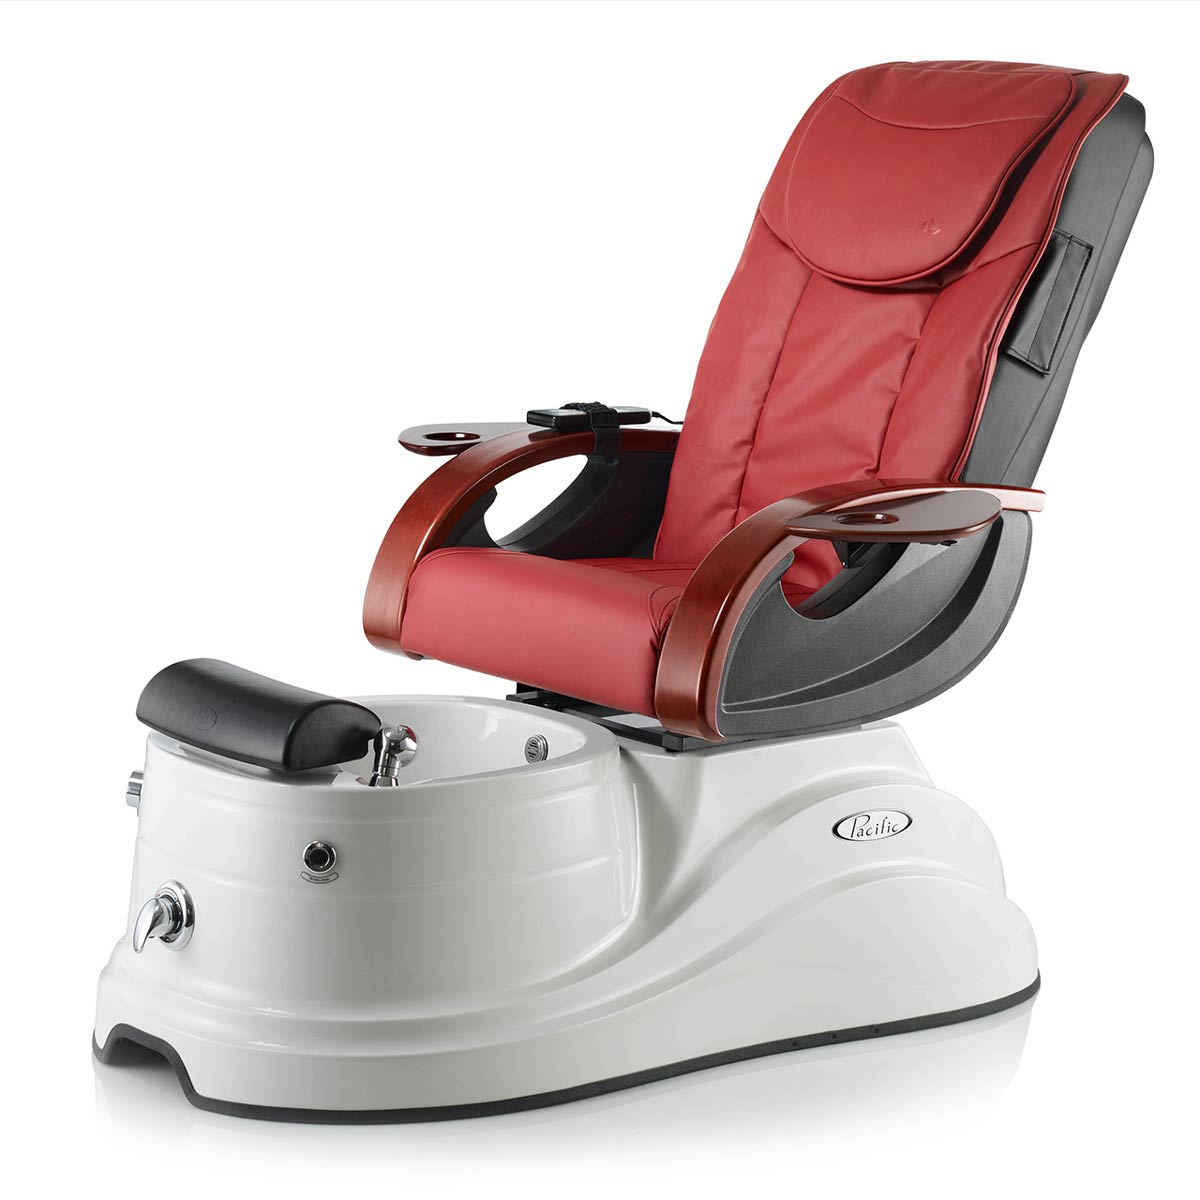 J & A Pacific AX Whirlpool Pipeless Pedicure Spa Chair alternative product image 1